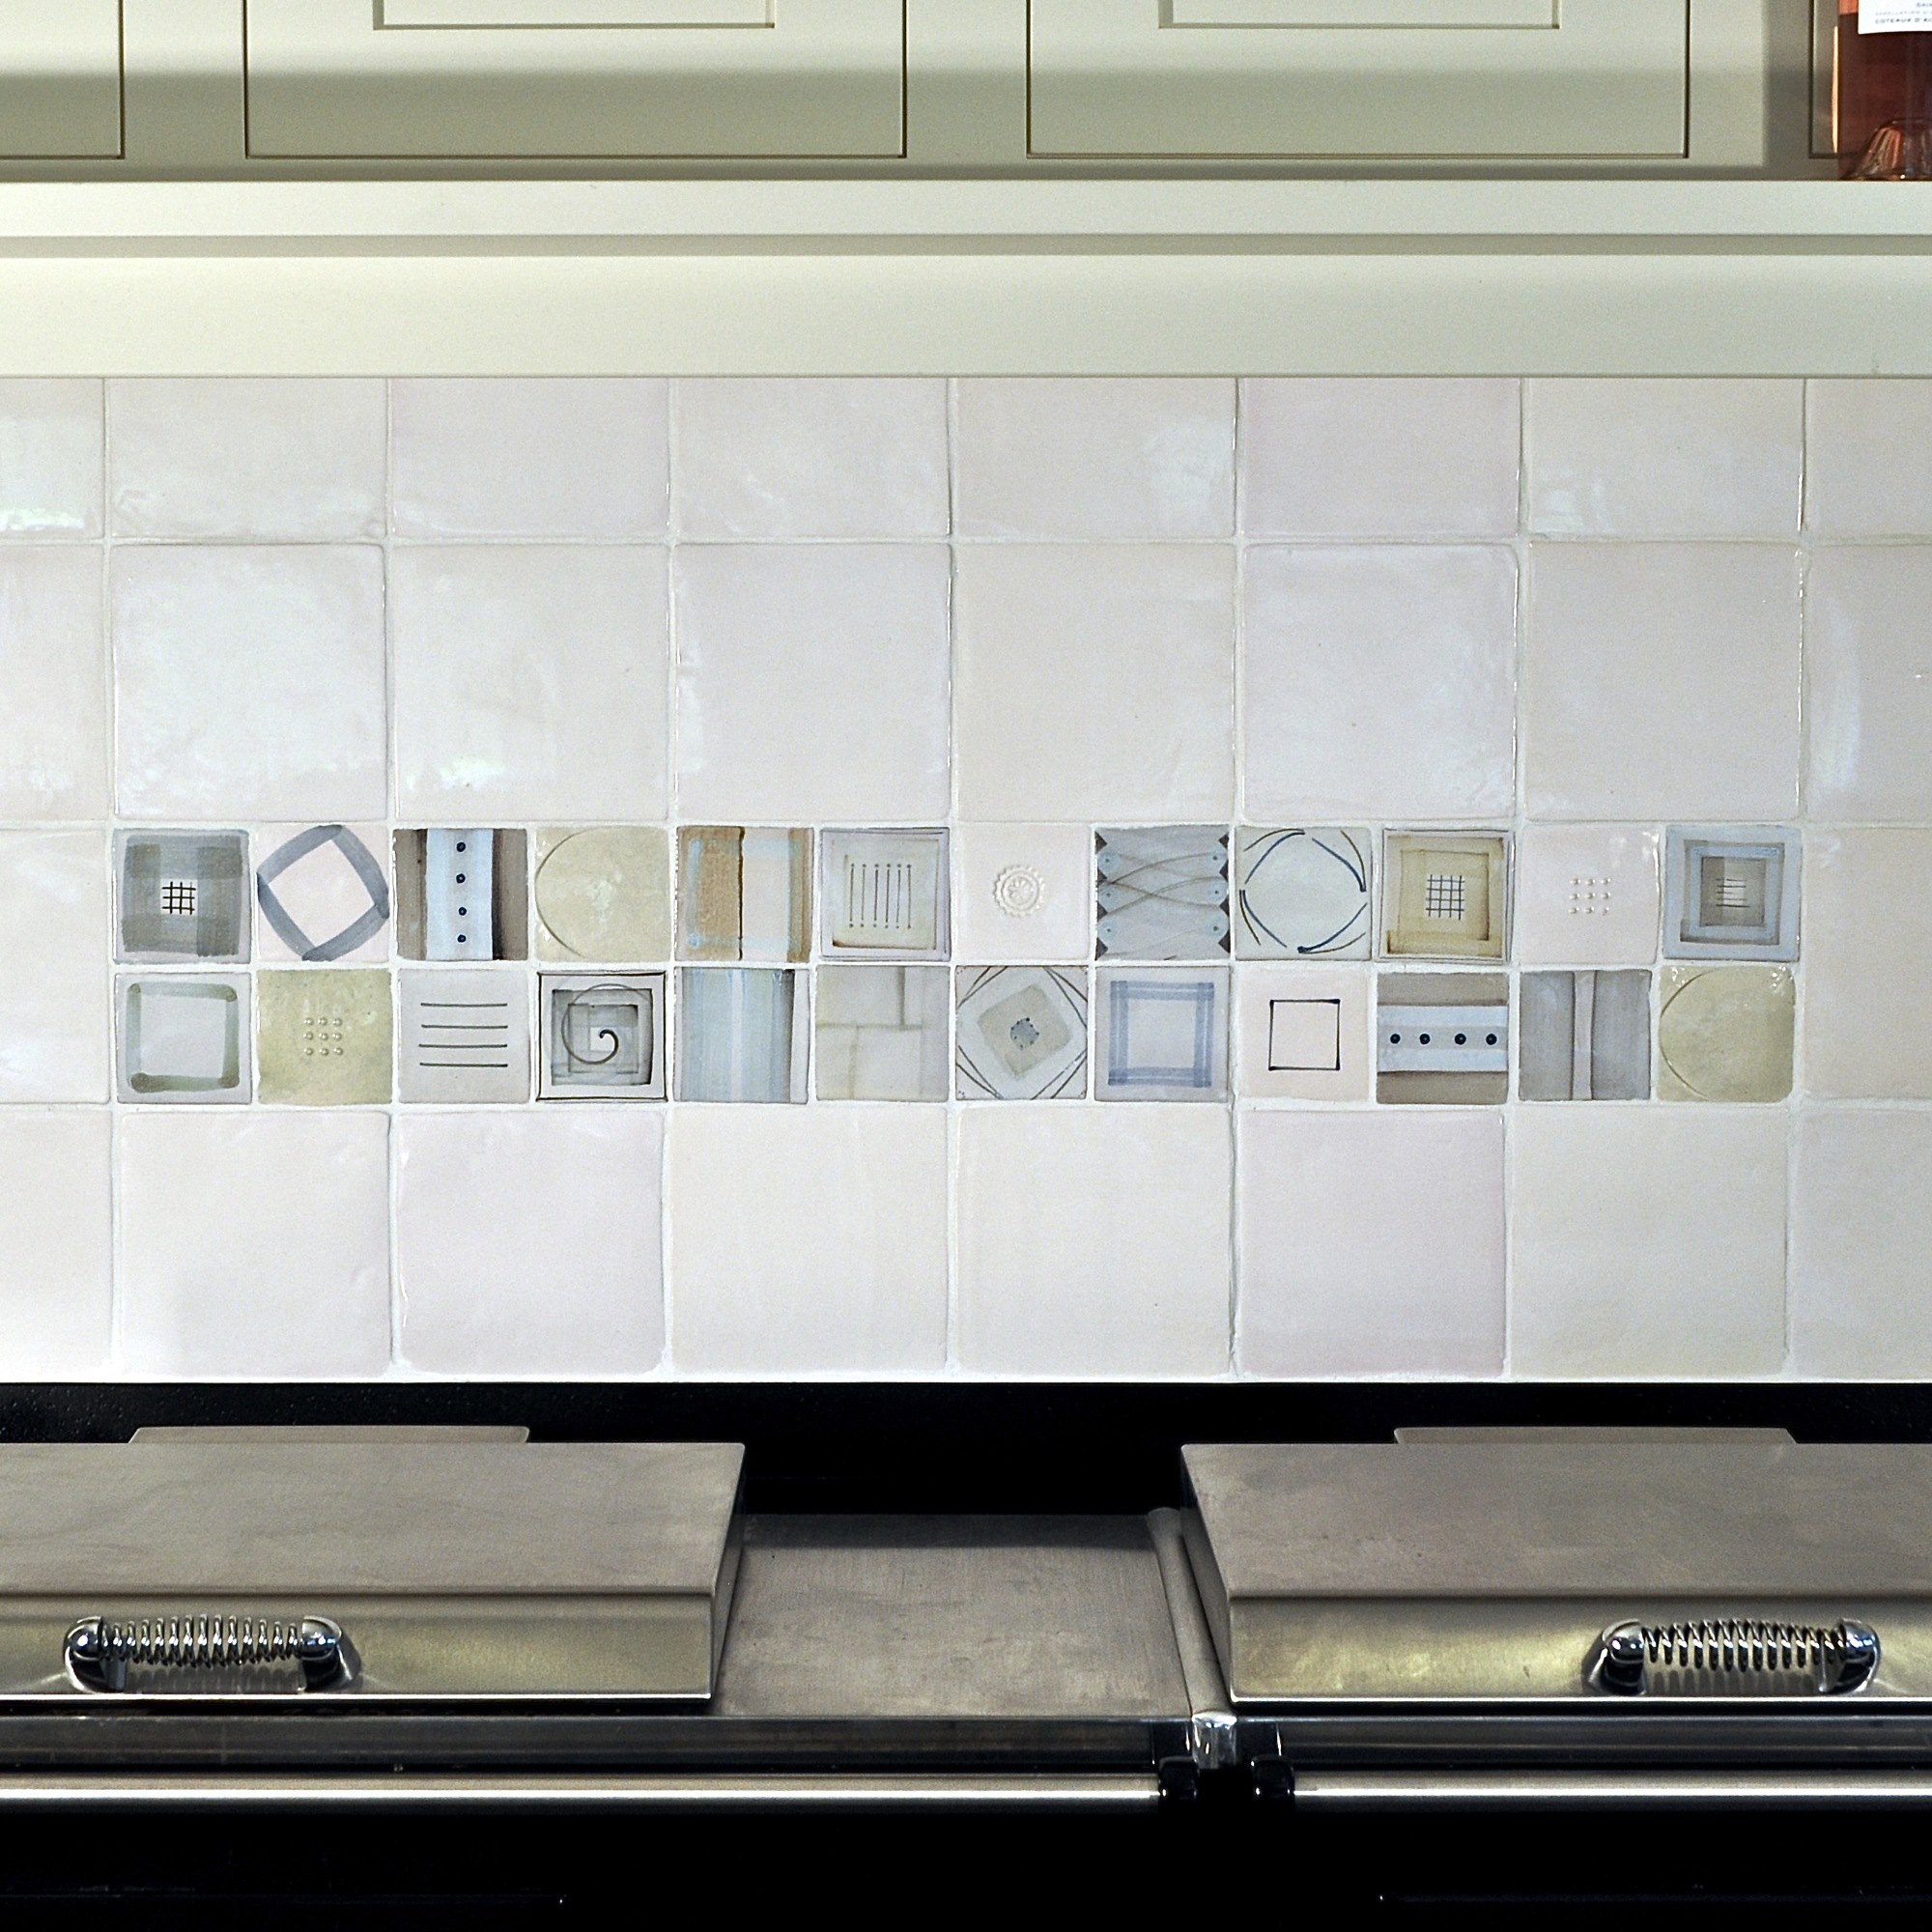 Piccolpasso Tiles:   An artistic statement which doesn't date.